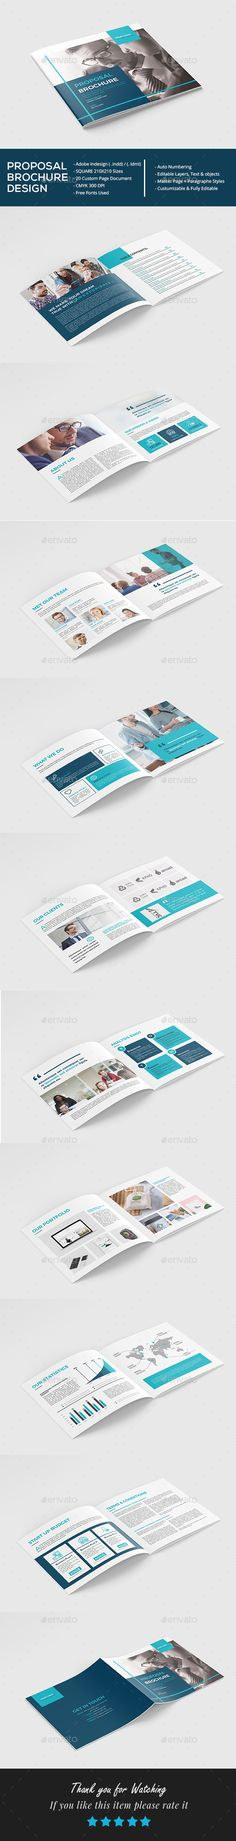 Square Proposal Brochure Template InDesign INDD - 20 Pages - Download: https://graphicriver.net/item/square-proposal-brochure/21736193?ref=ksioks